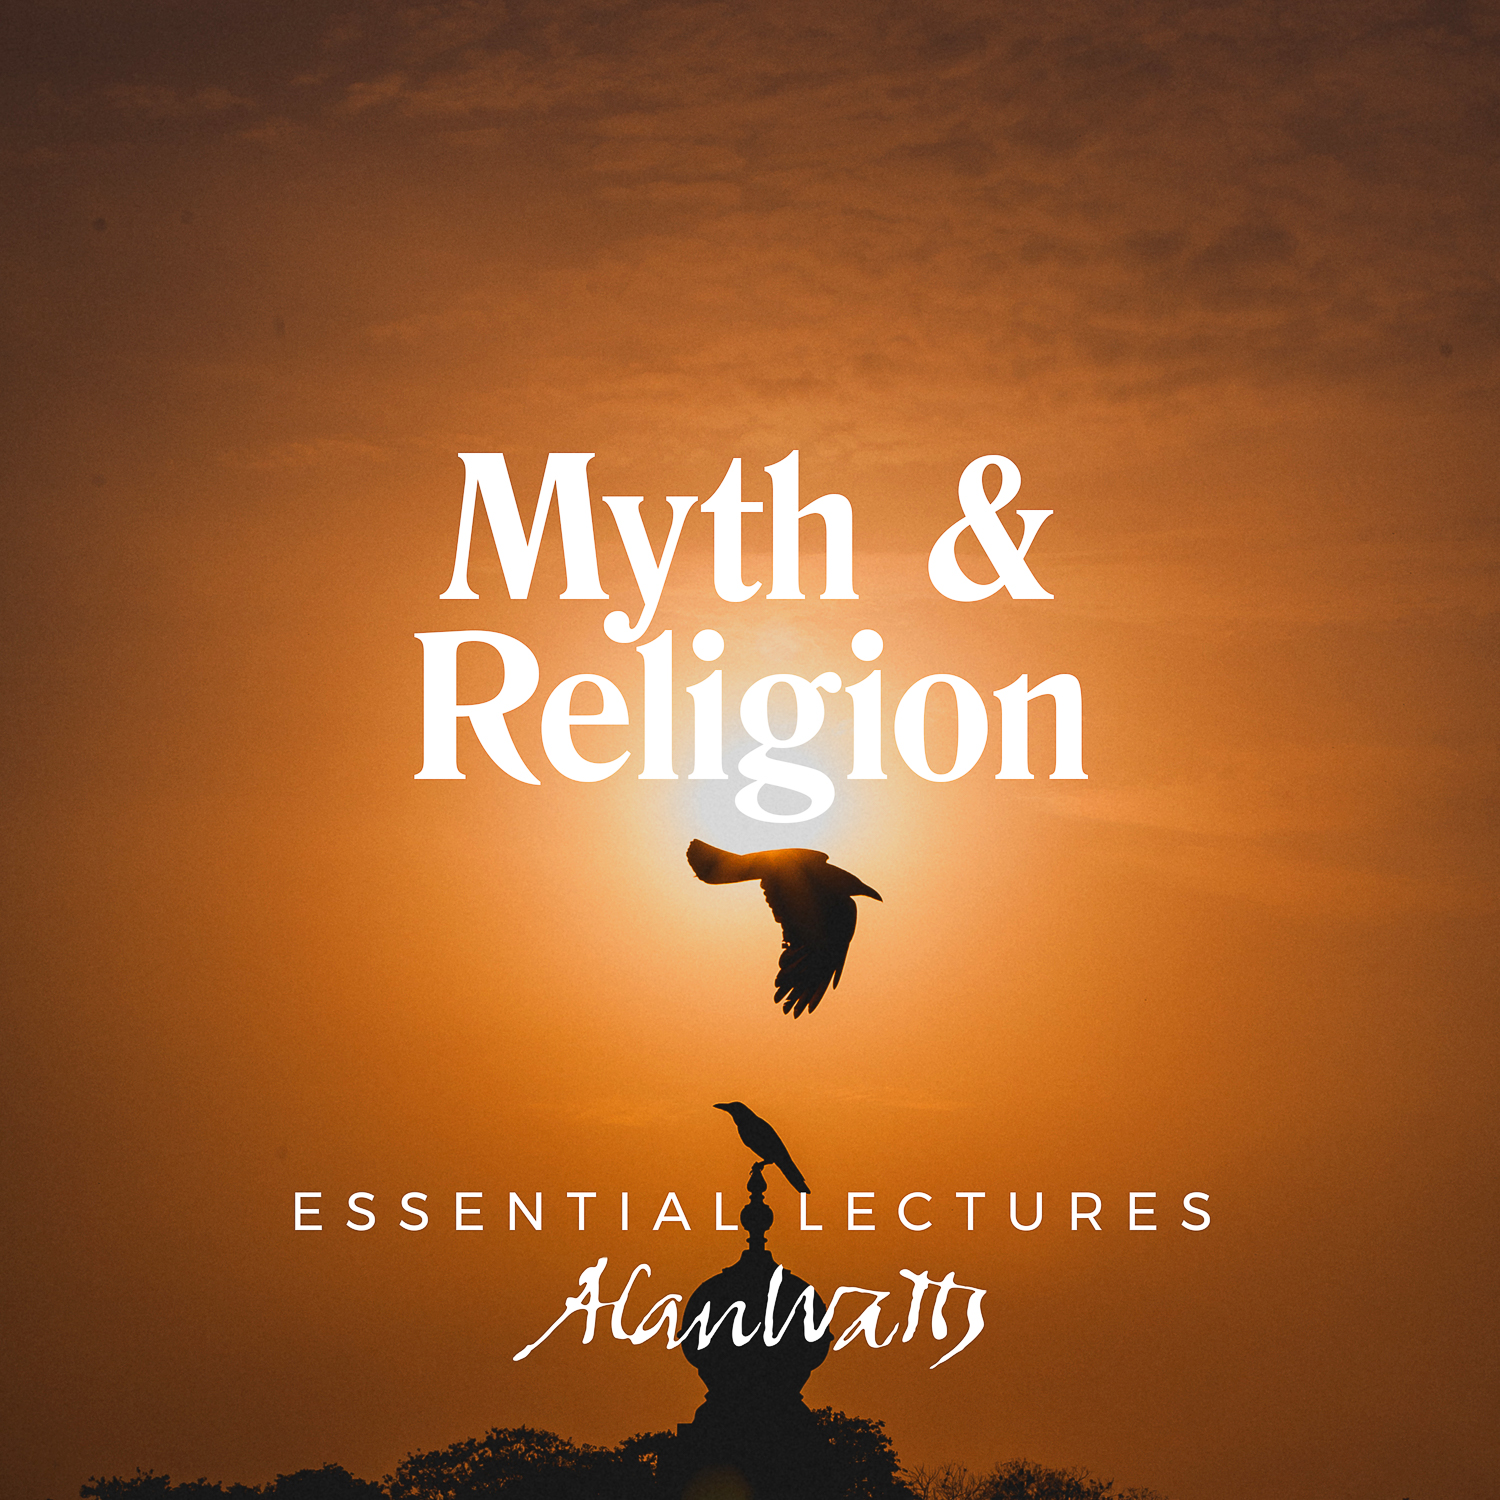 an introduction to the mythology of christianity and the myth of jesus And when it comes to the rightful claim of deity, most christians' apologetics—a   and many gravitate toward the african myths and deities they claim have similar   resources for further study (good introductory material).